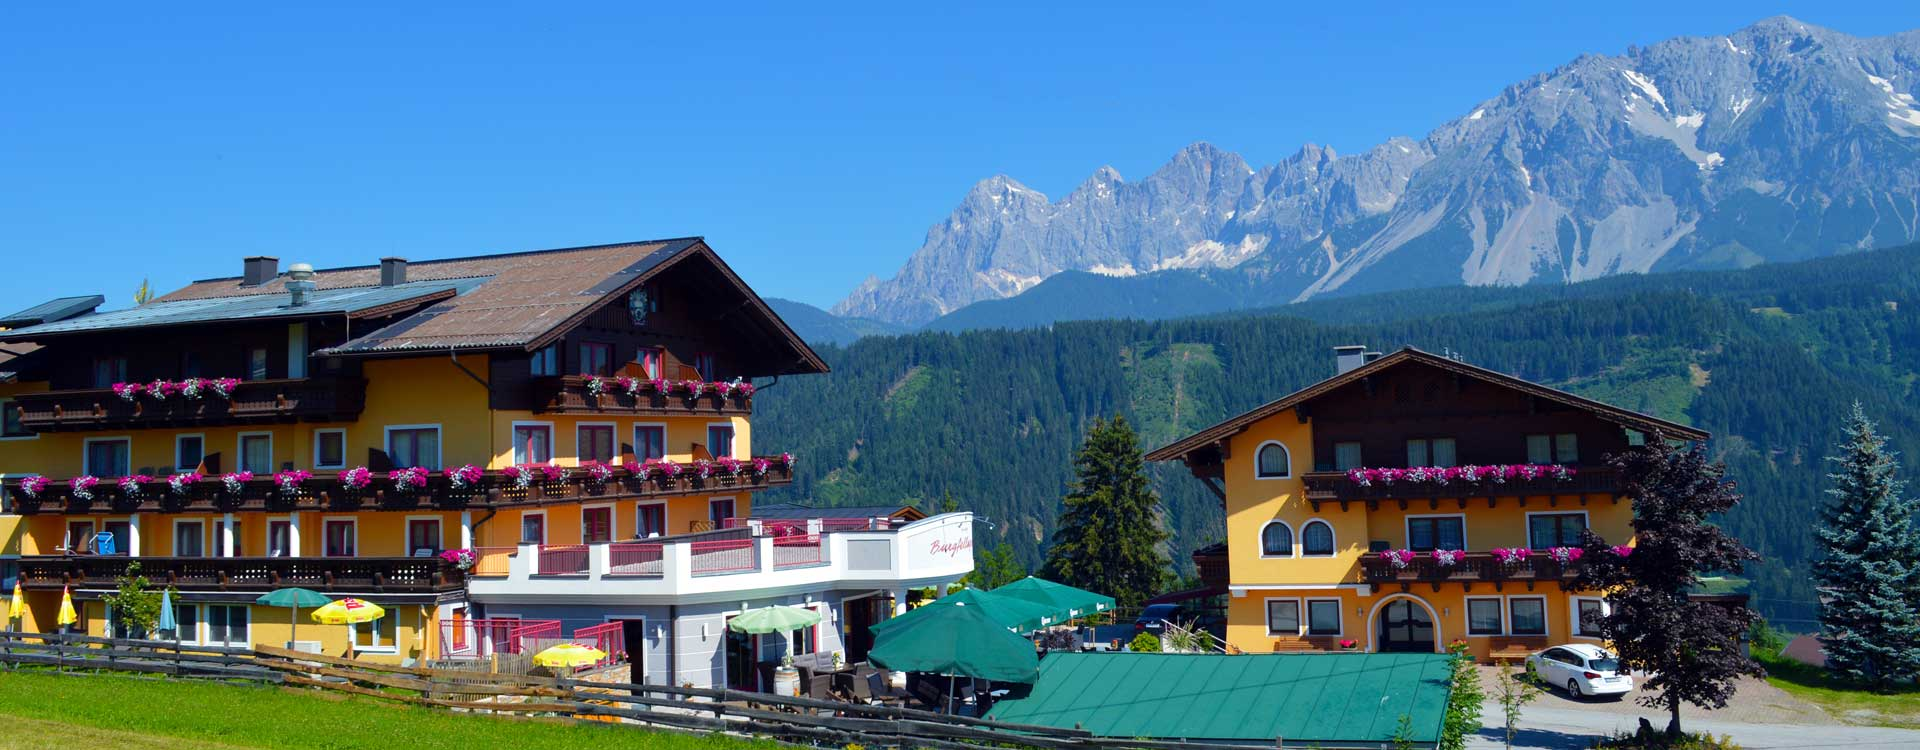 Sommerurlaub ohne Kinder im Adults-Only Hotel in Schladming